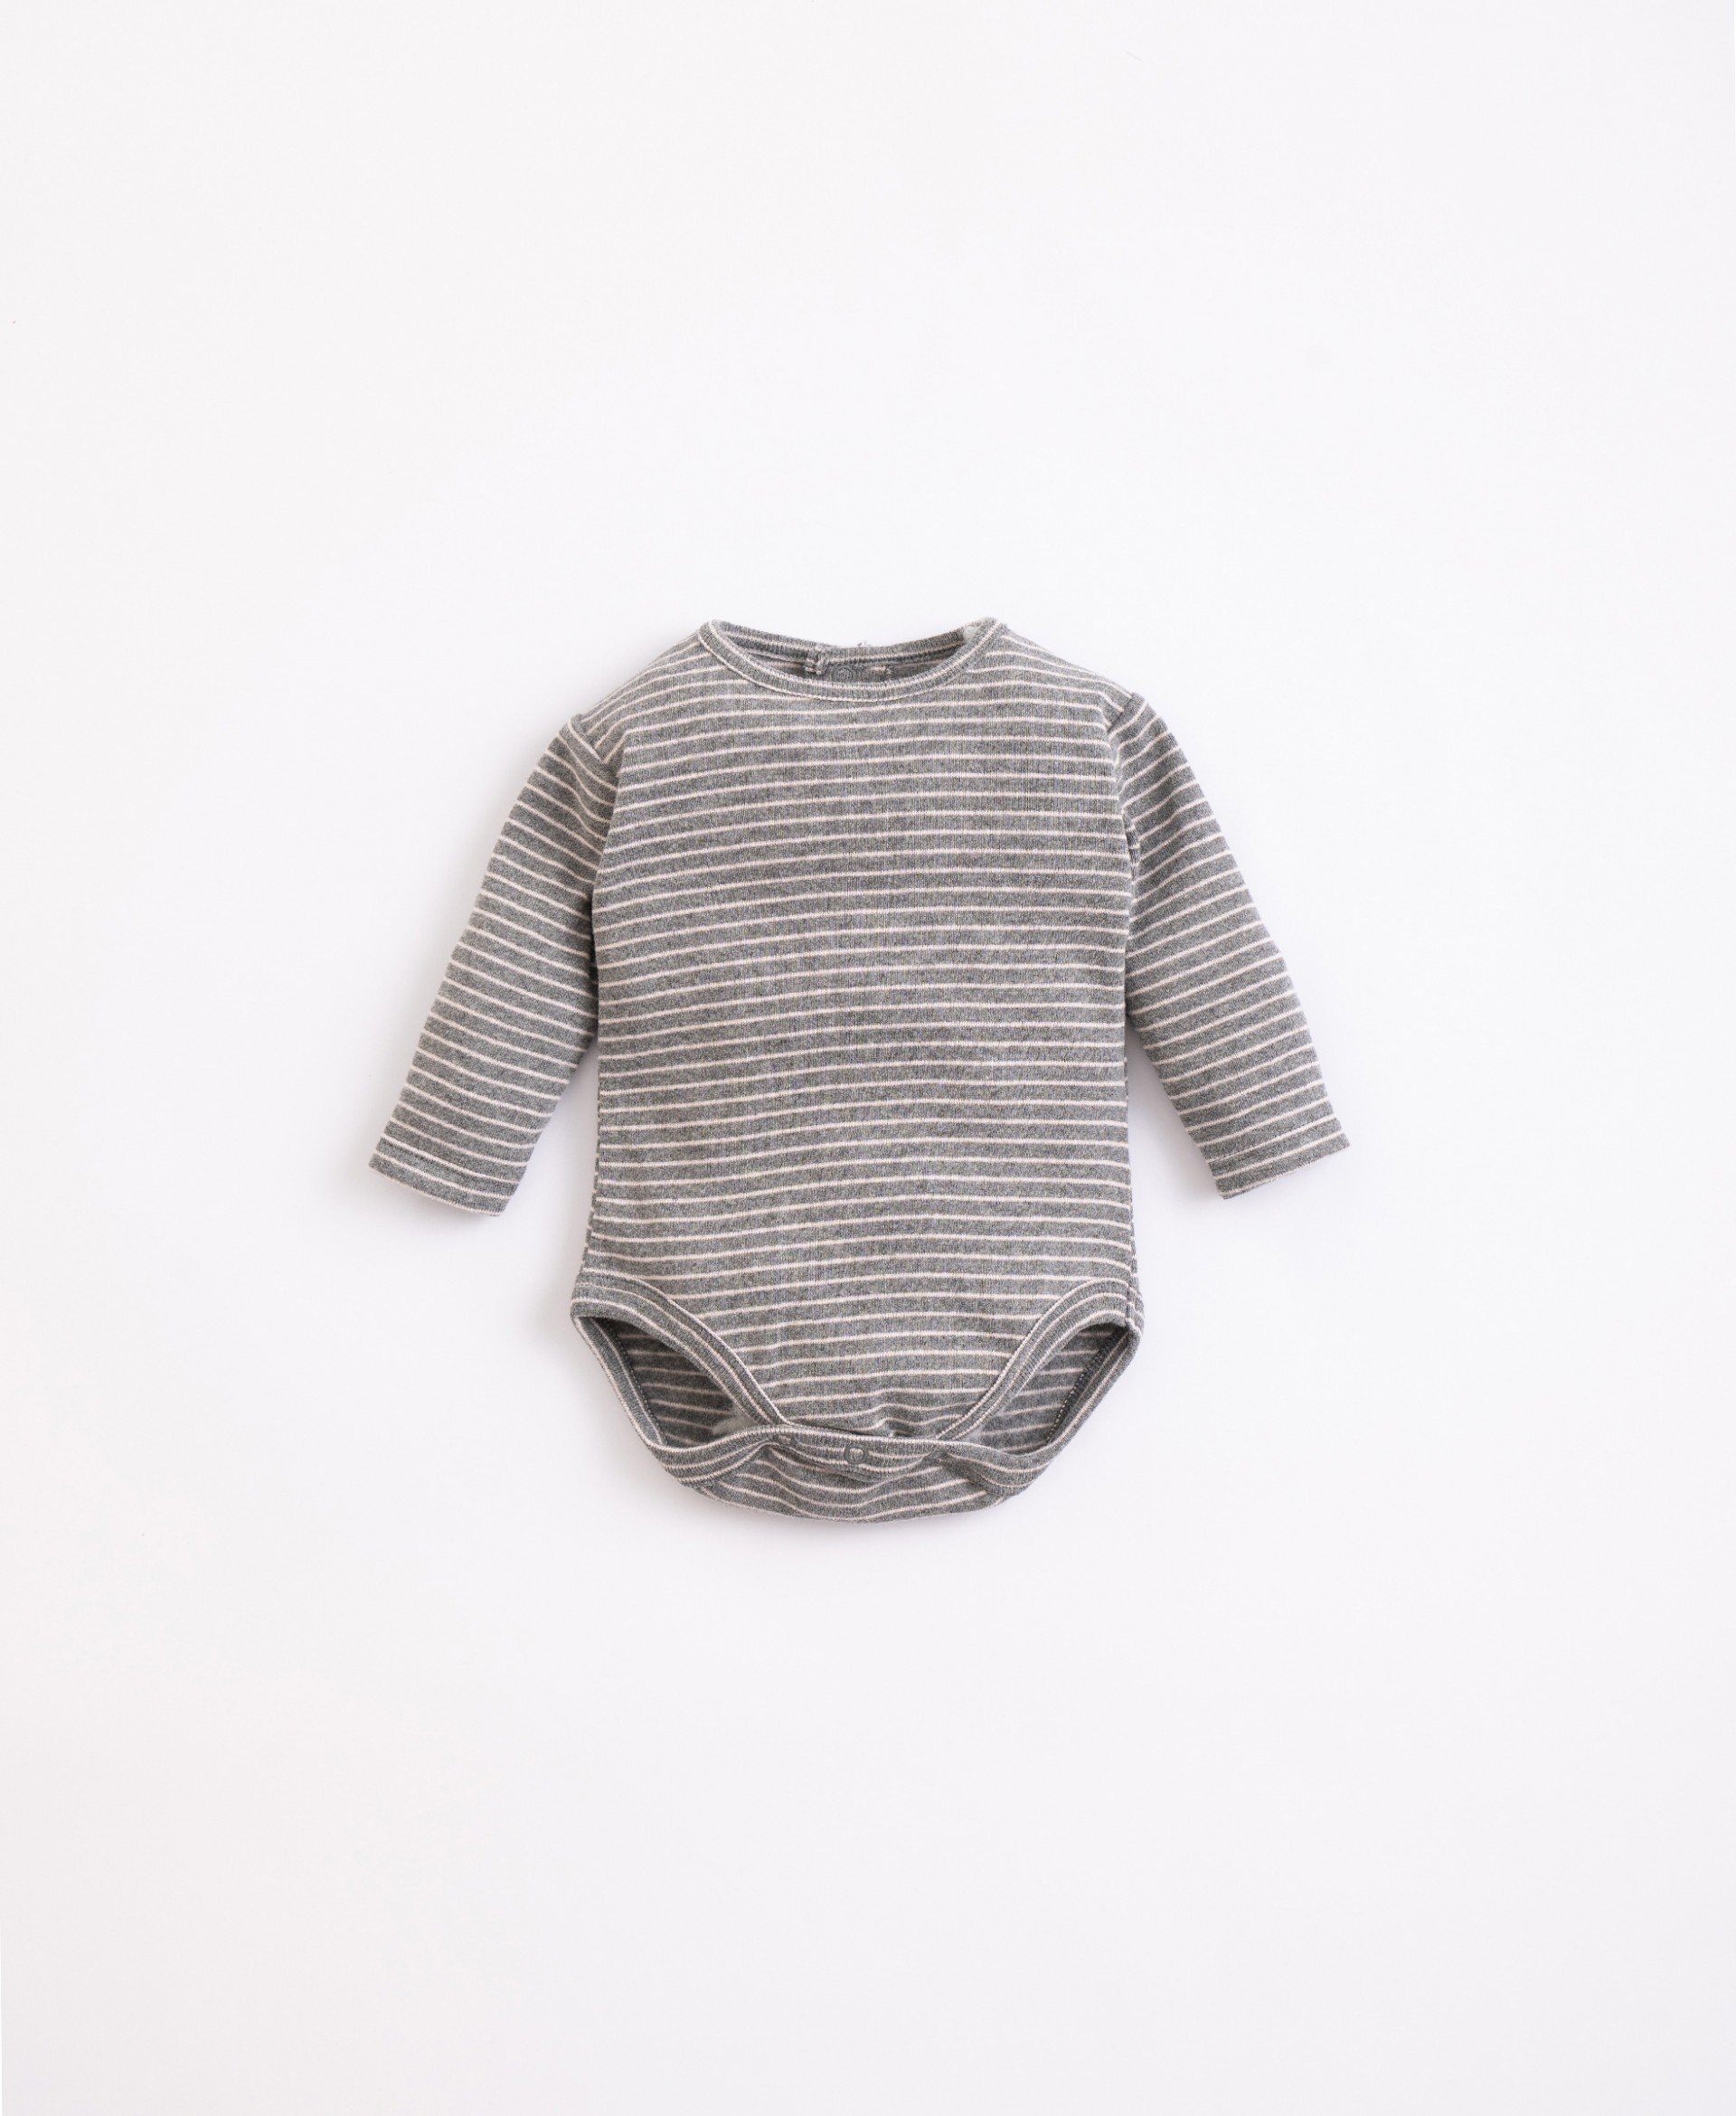 Body with recycled fibres and cotton | Illustration